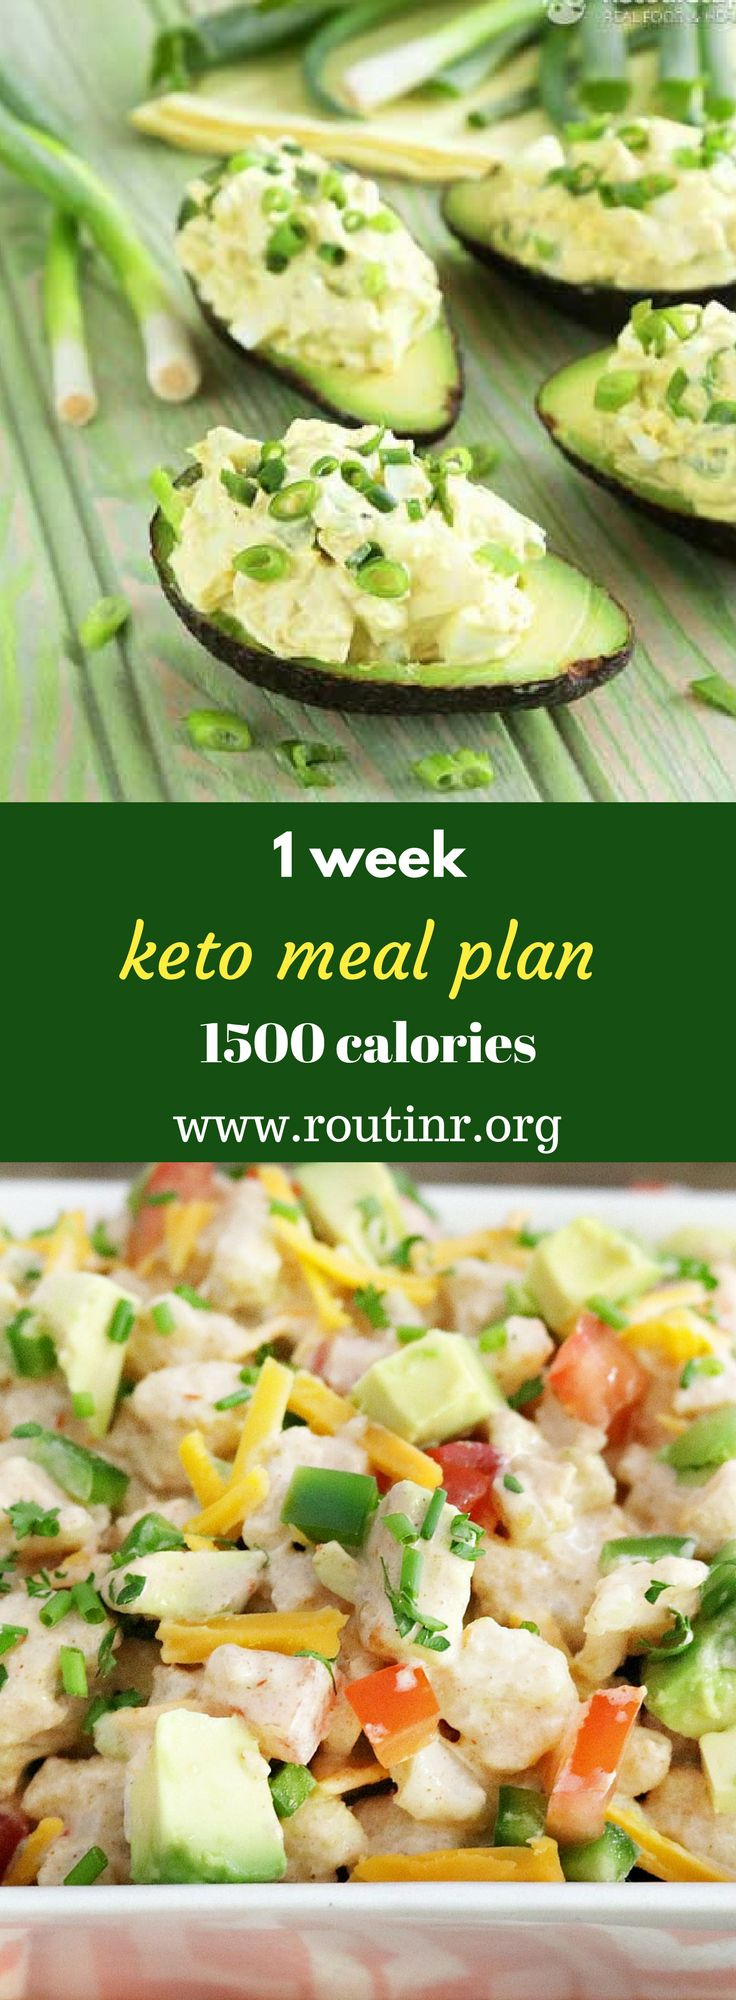 Keto Meal Plans: 1 week keto meal plan 1500 calories. A ketogenic diet, or keto diet, is a very low-carb diet, which turns the body into a fat-burning machine. It has many potential benefits for weight loss, health and performance, but also some potential initial side effects. Find out more at:https://routinr.org/routines/1-week-keto-meal-plan-1500-calories #atkinsdietweek1